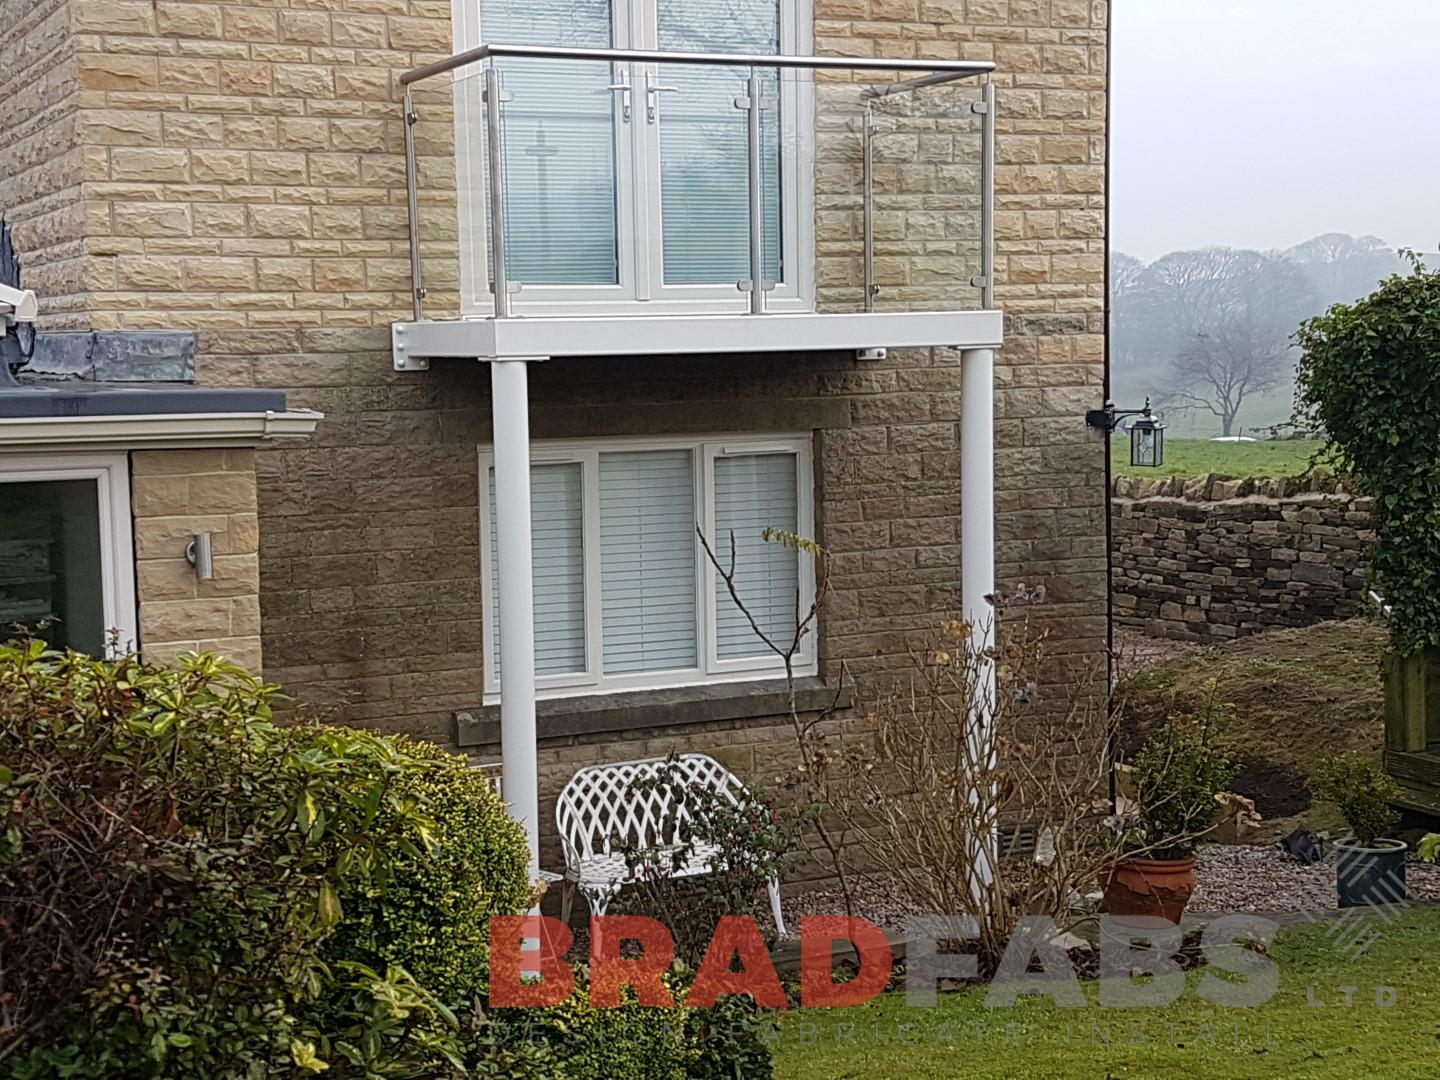 Garden Balcony with Stainless Steel and Glass Balustrade